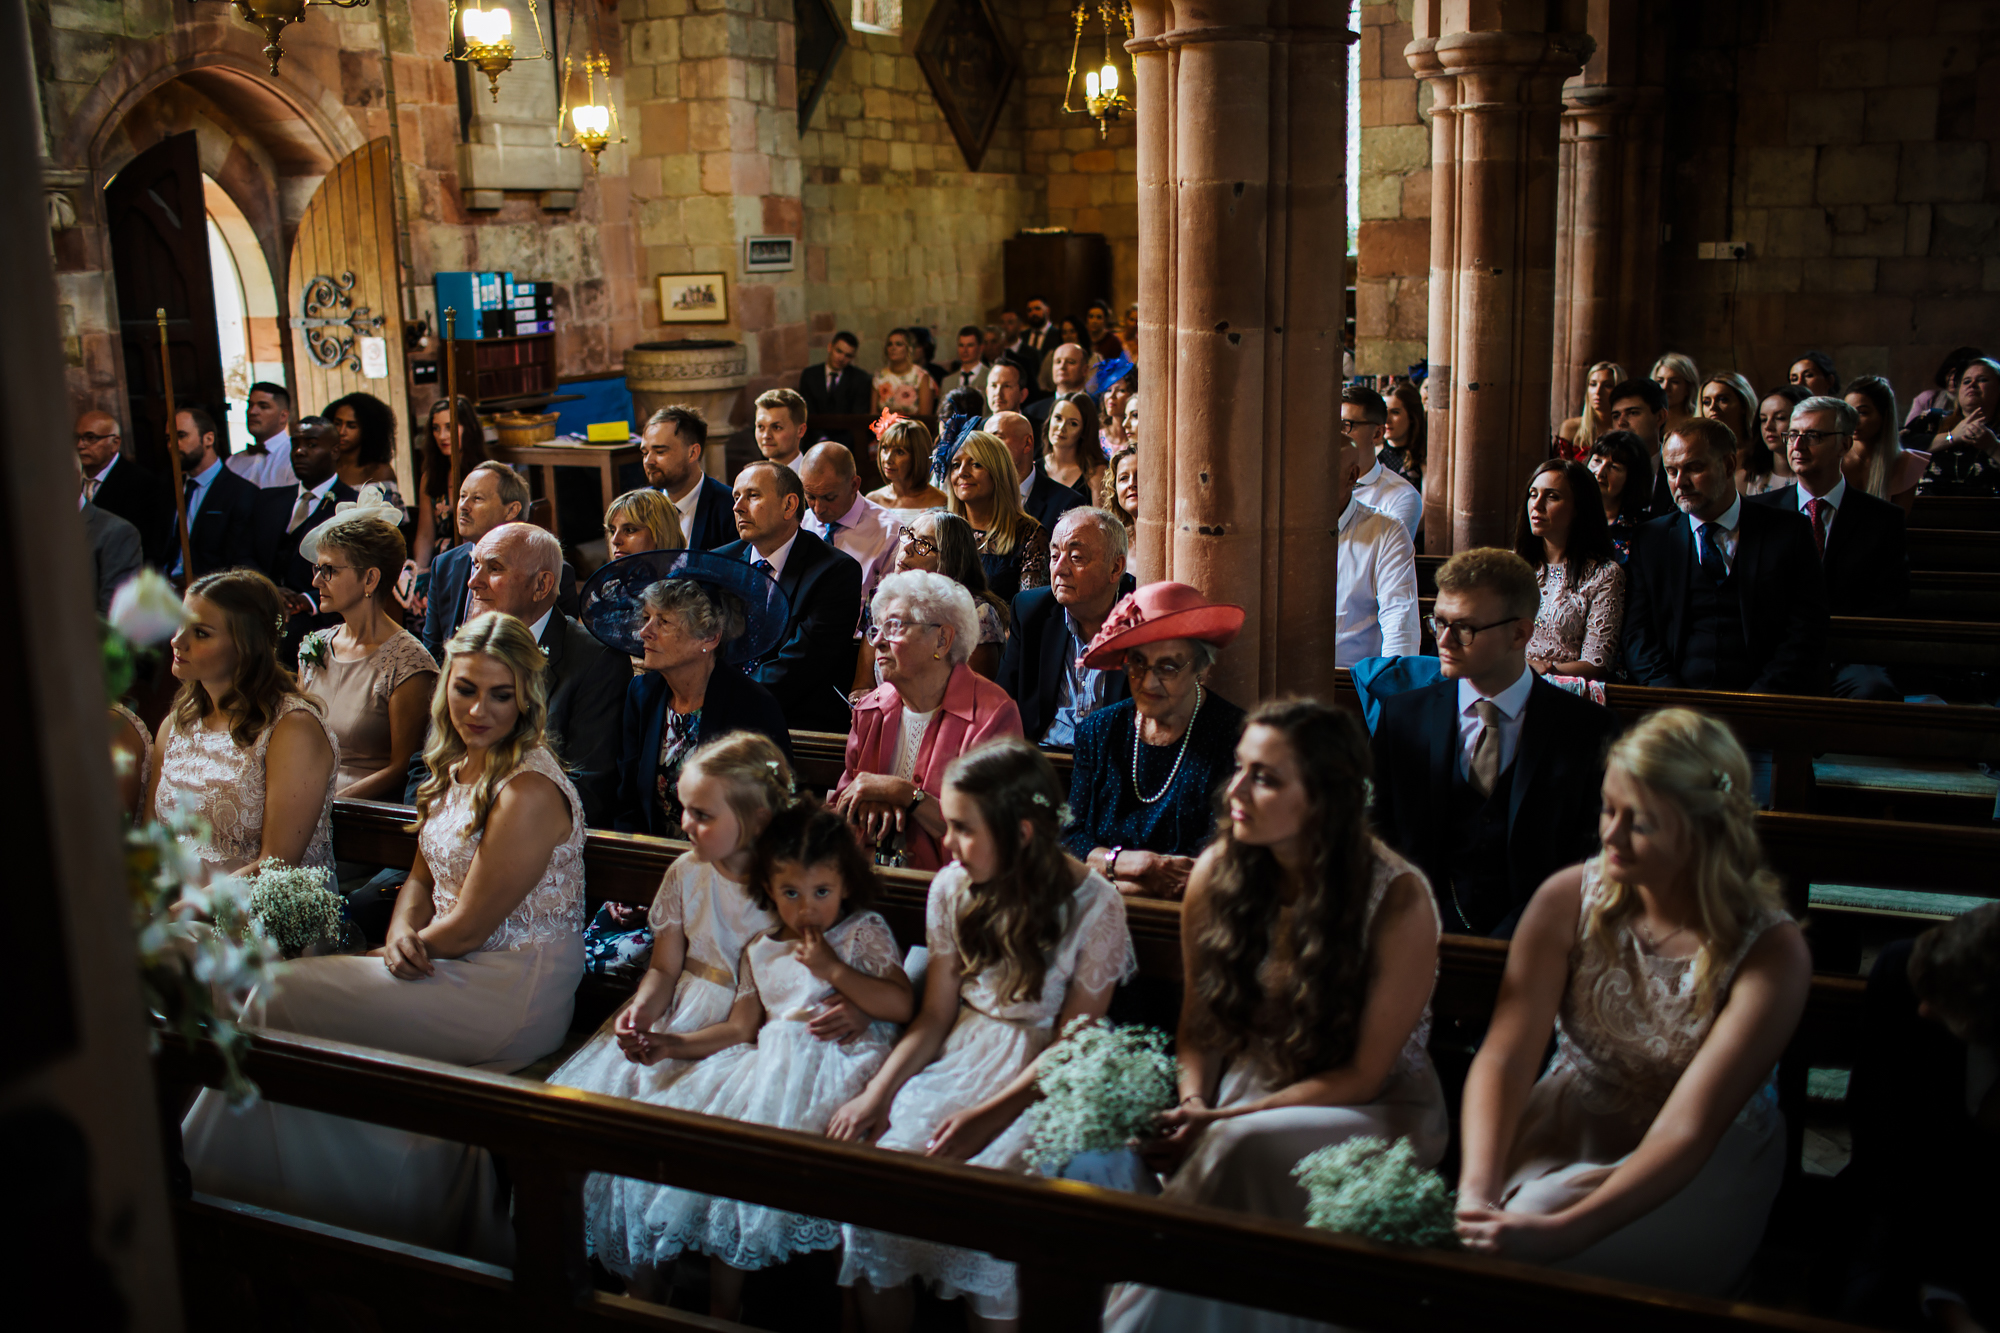 Wedding guests and bridesmaids in the church